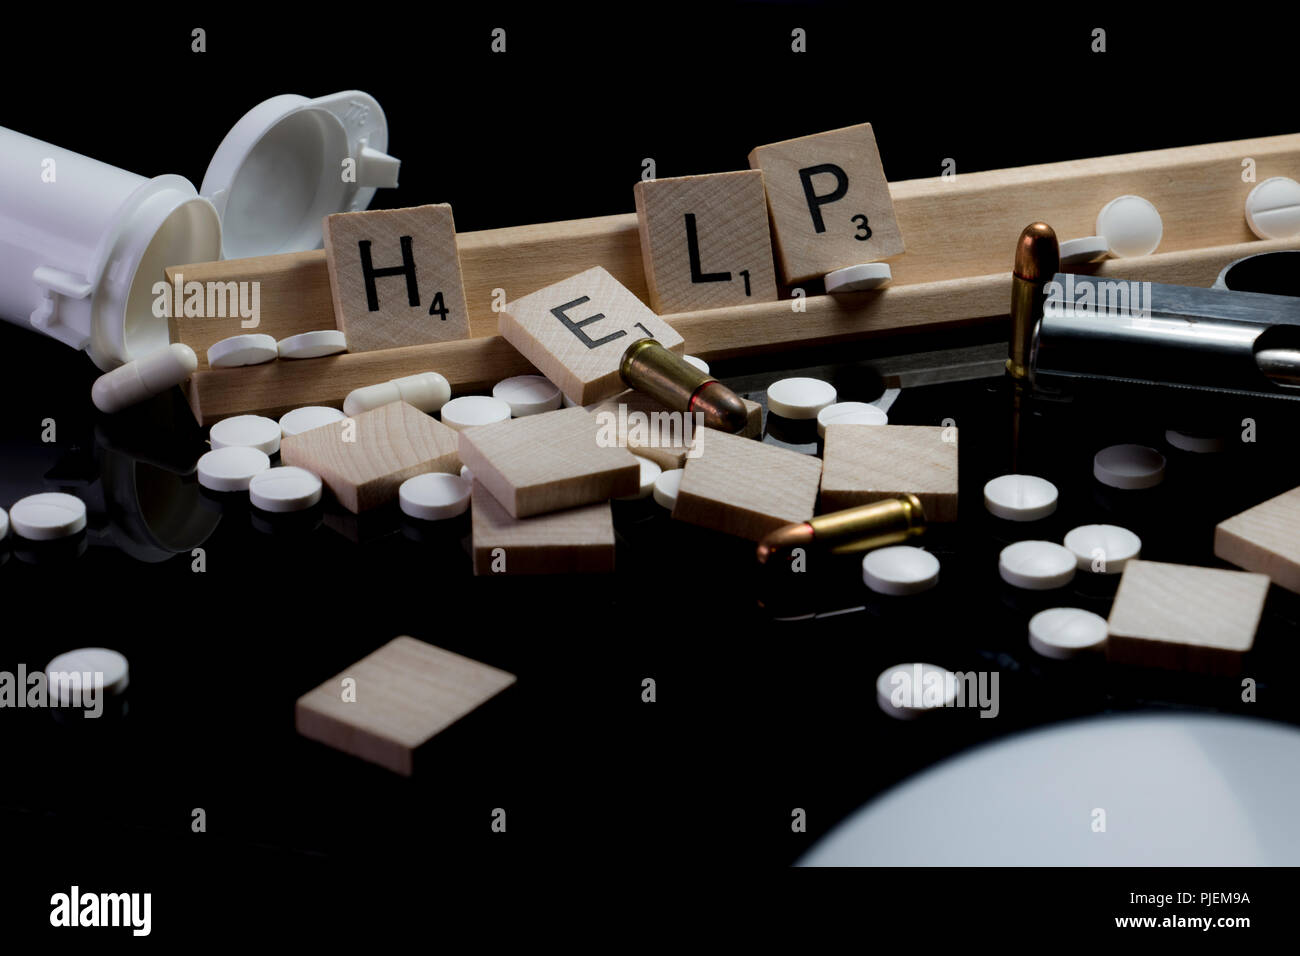 HELP spelled in block text letters with pills, bullets, pistol and pill bottle. Crisis prevention concept. - Stock Image